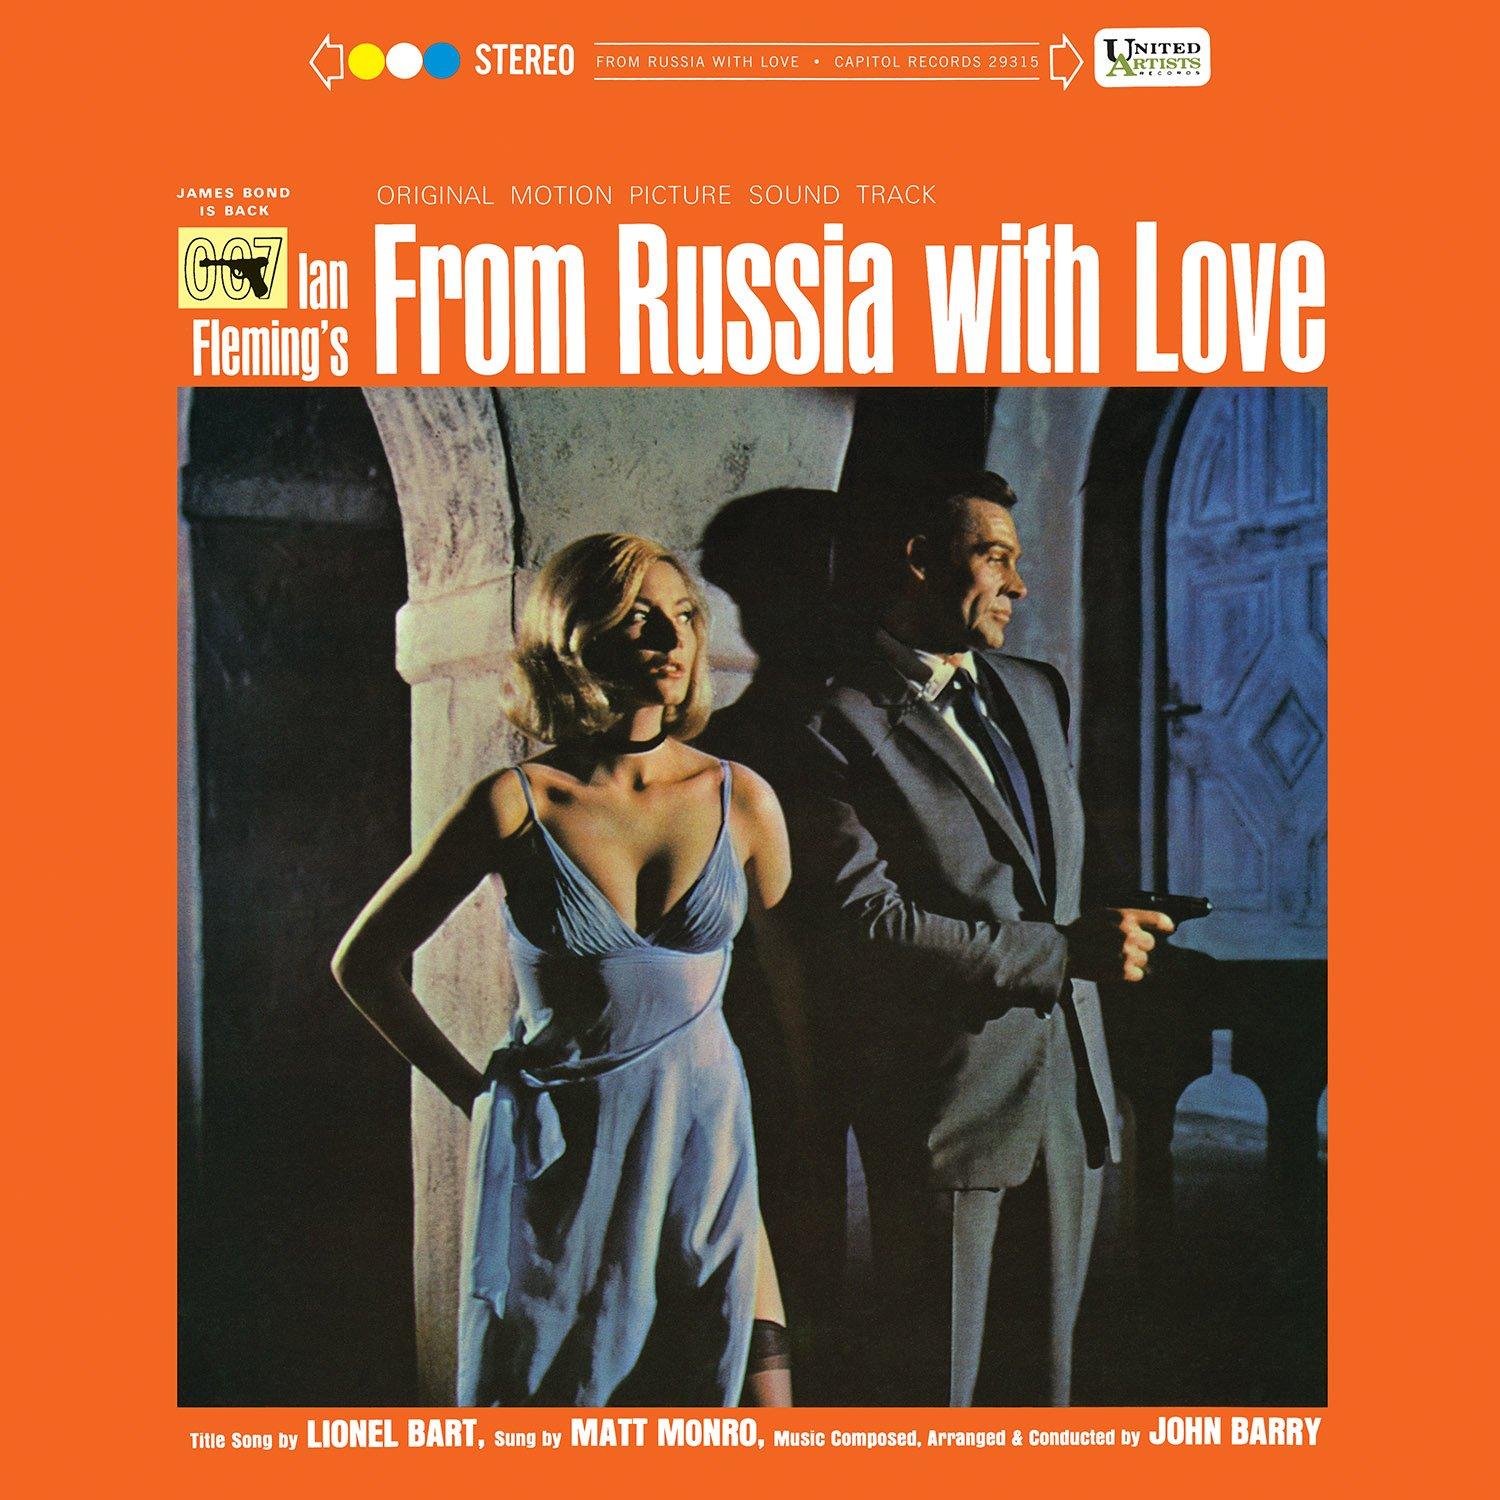 From Russia With Love James Bond Soundtrack xqatfg0998052